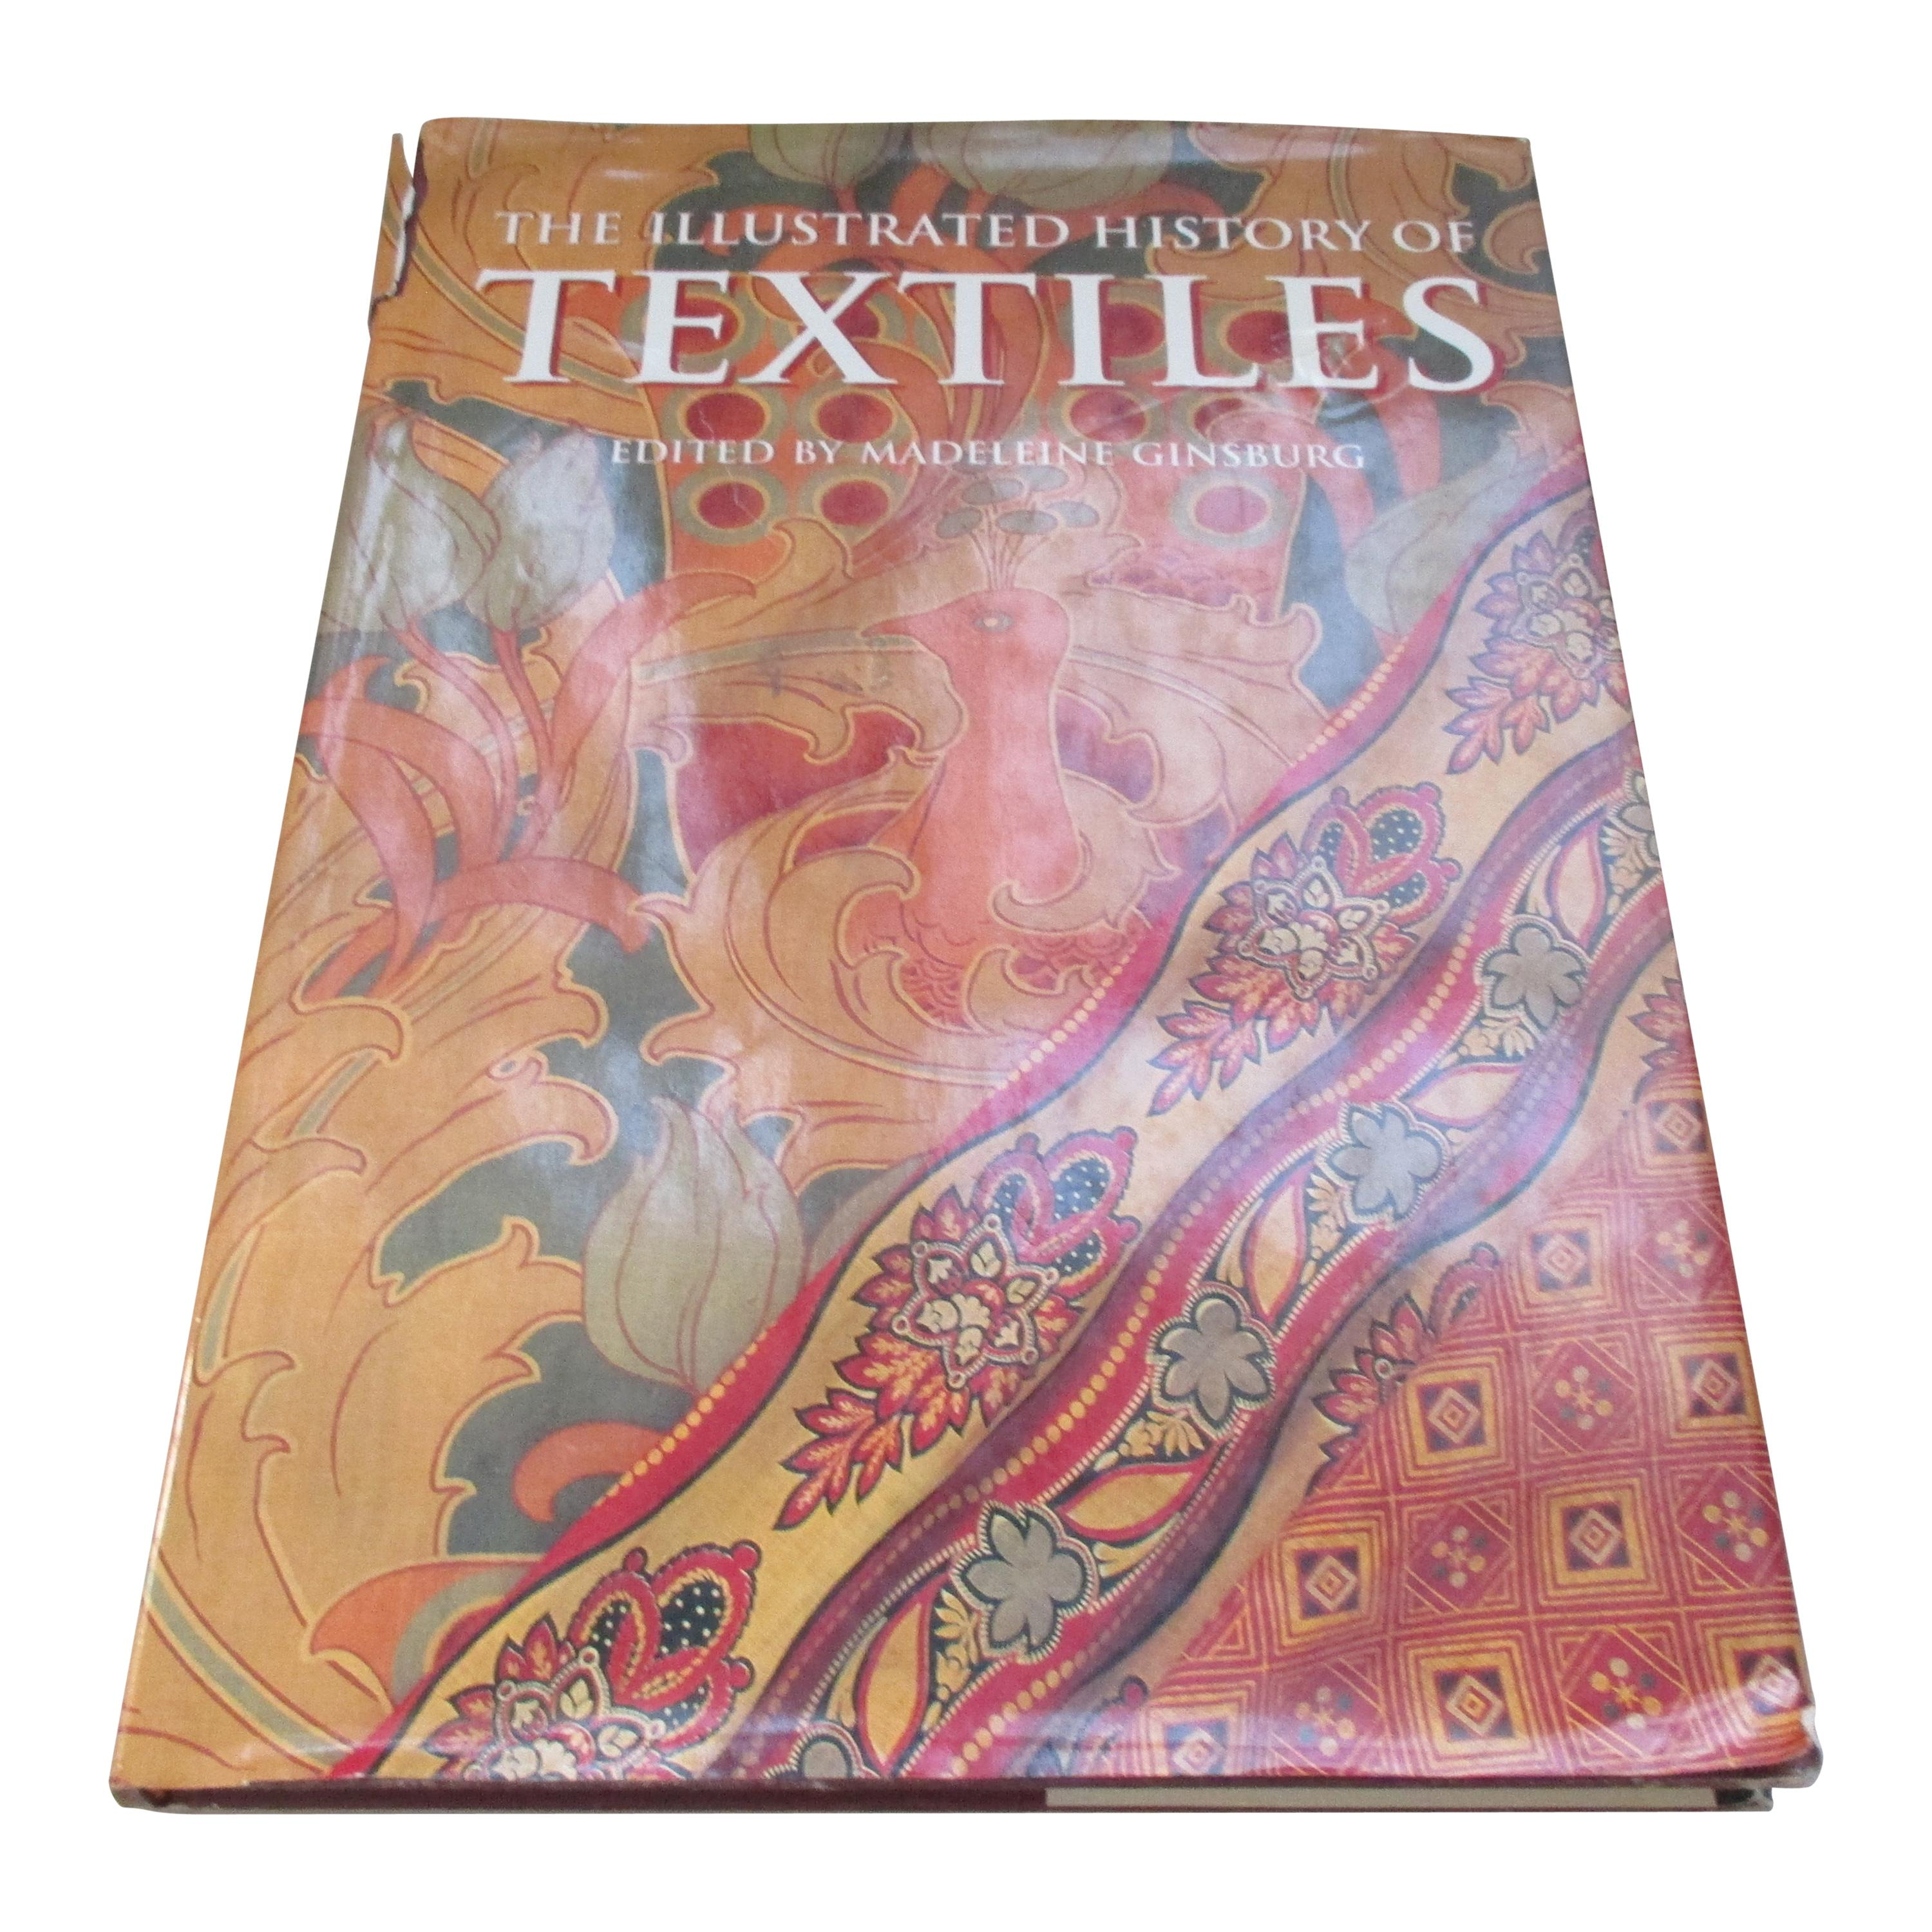 The Illustrated History of Textiles Hardcover Designing Book